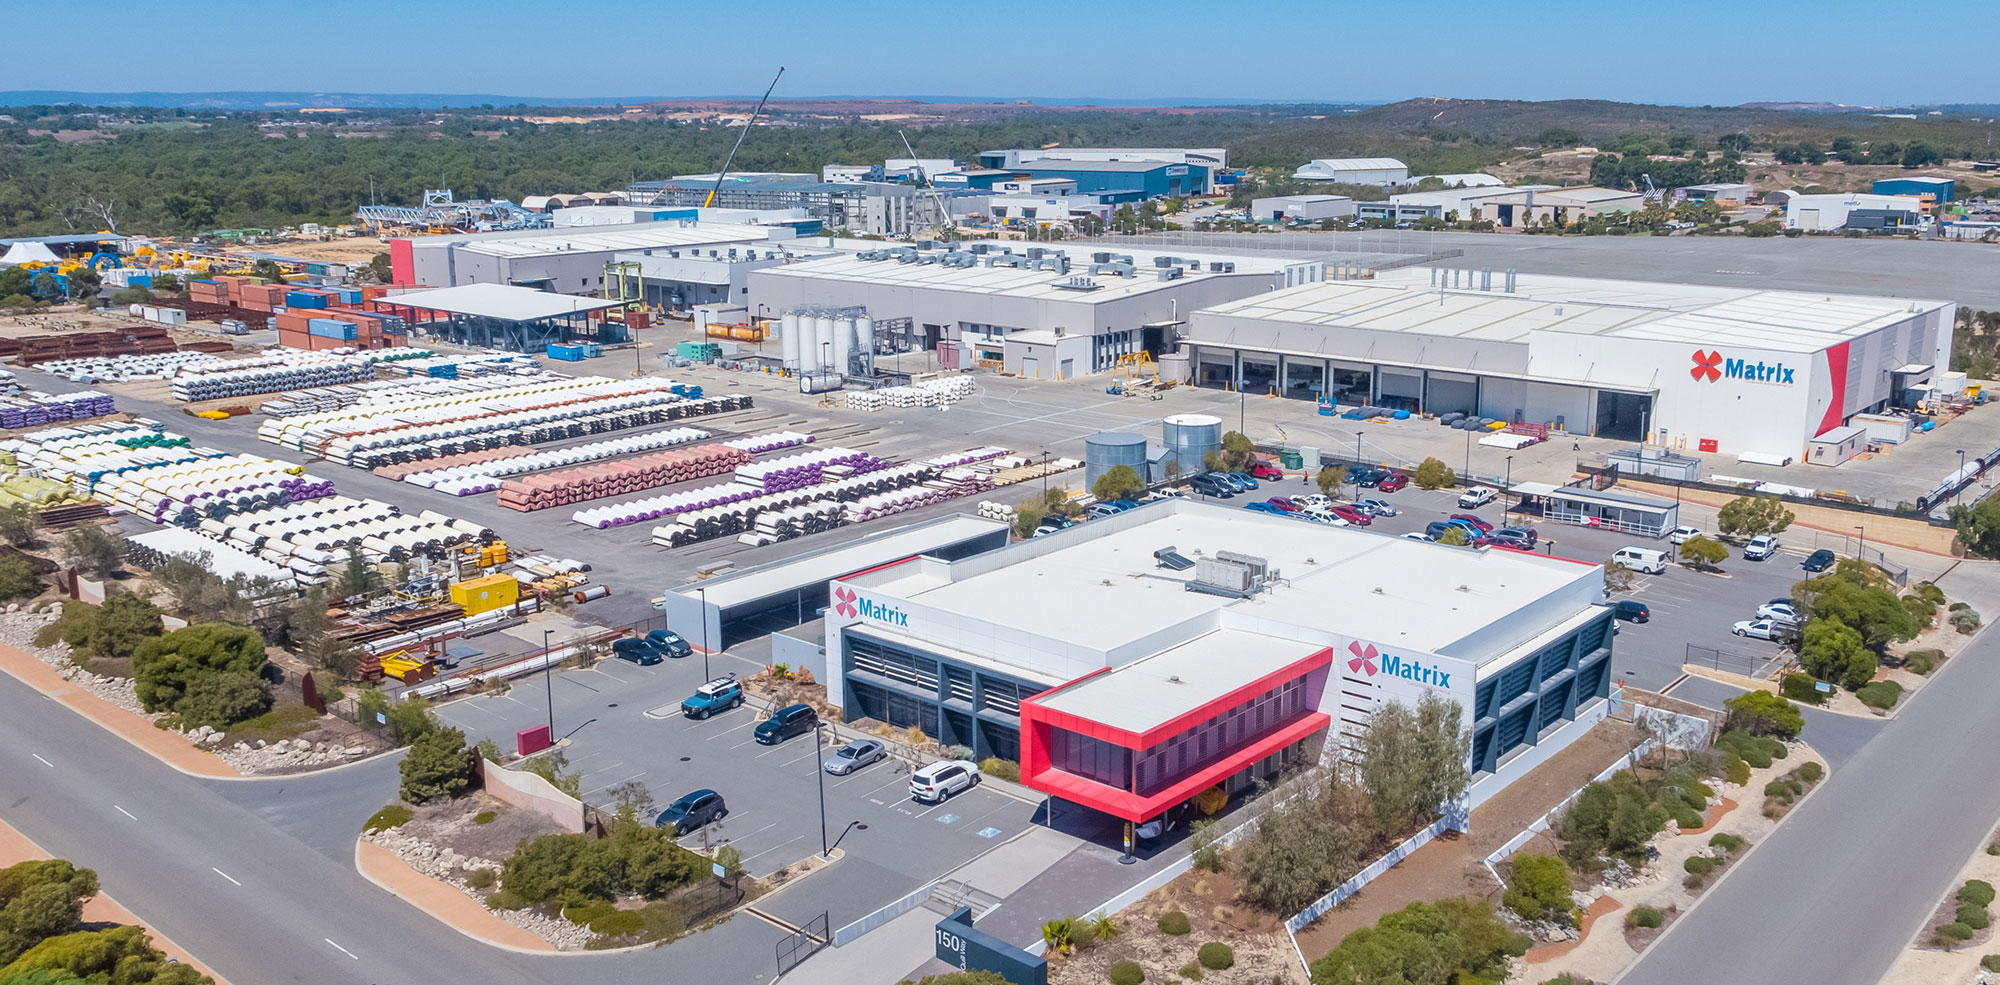 New collaboration agreement to build capability in Western Australia